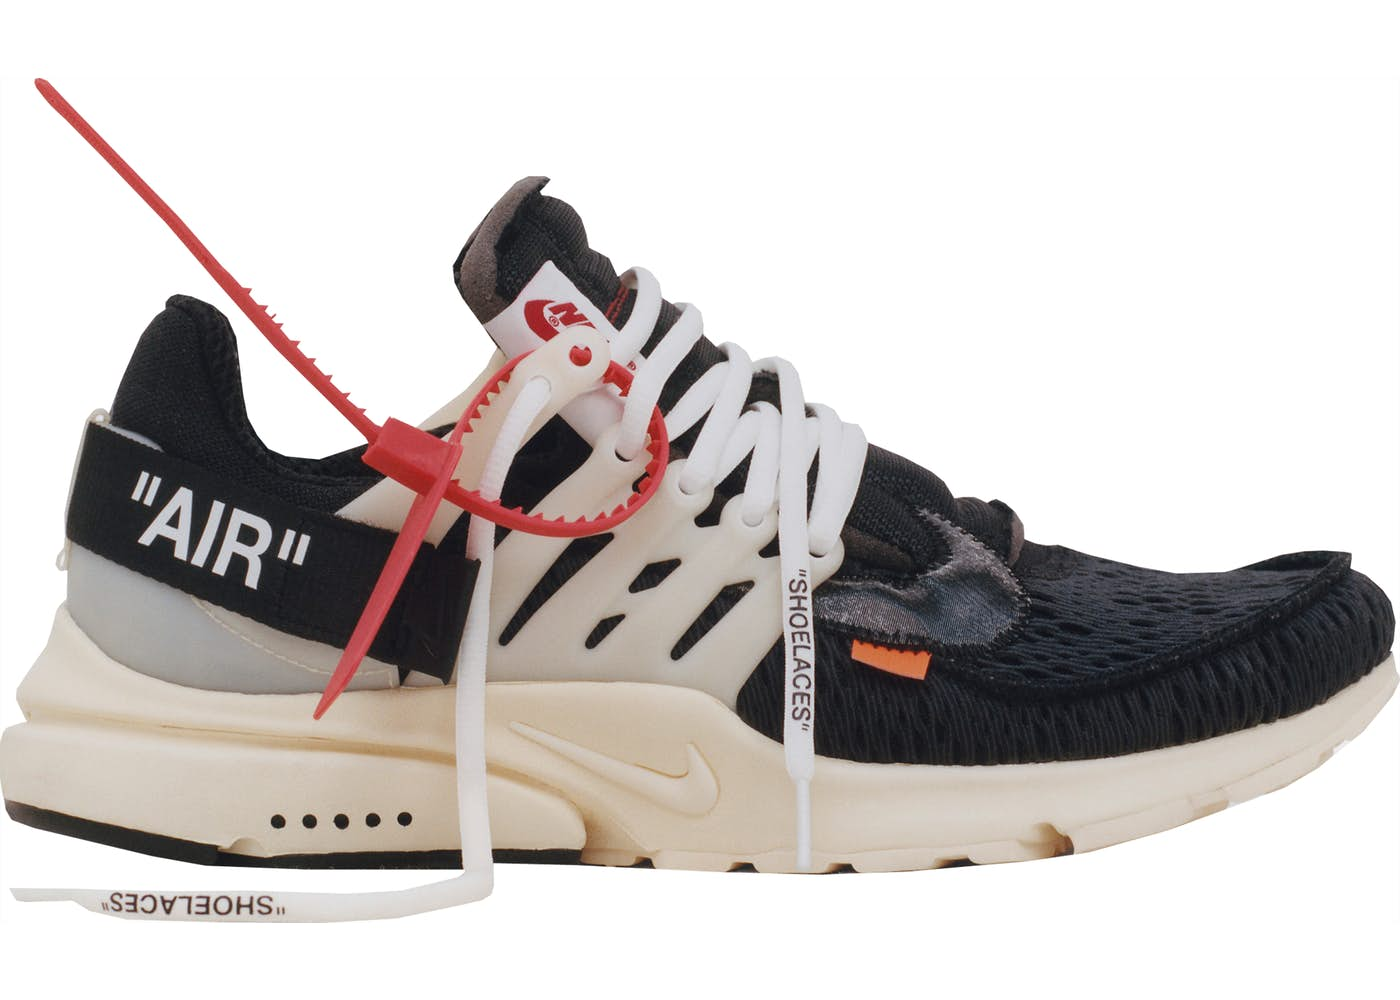 Where to buy the Oval Off White